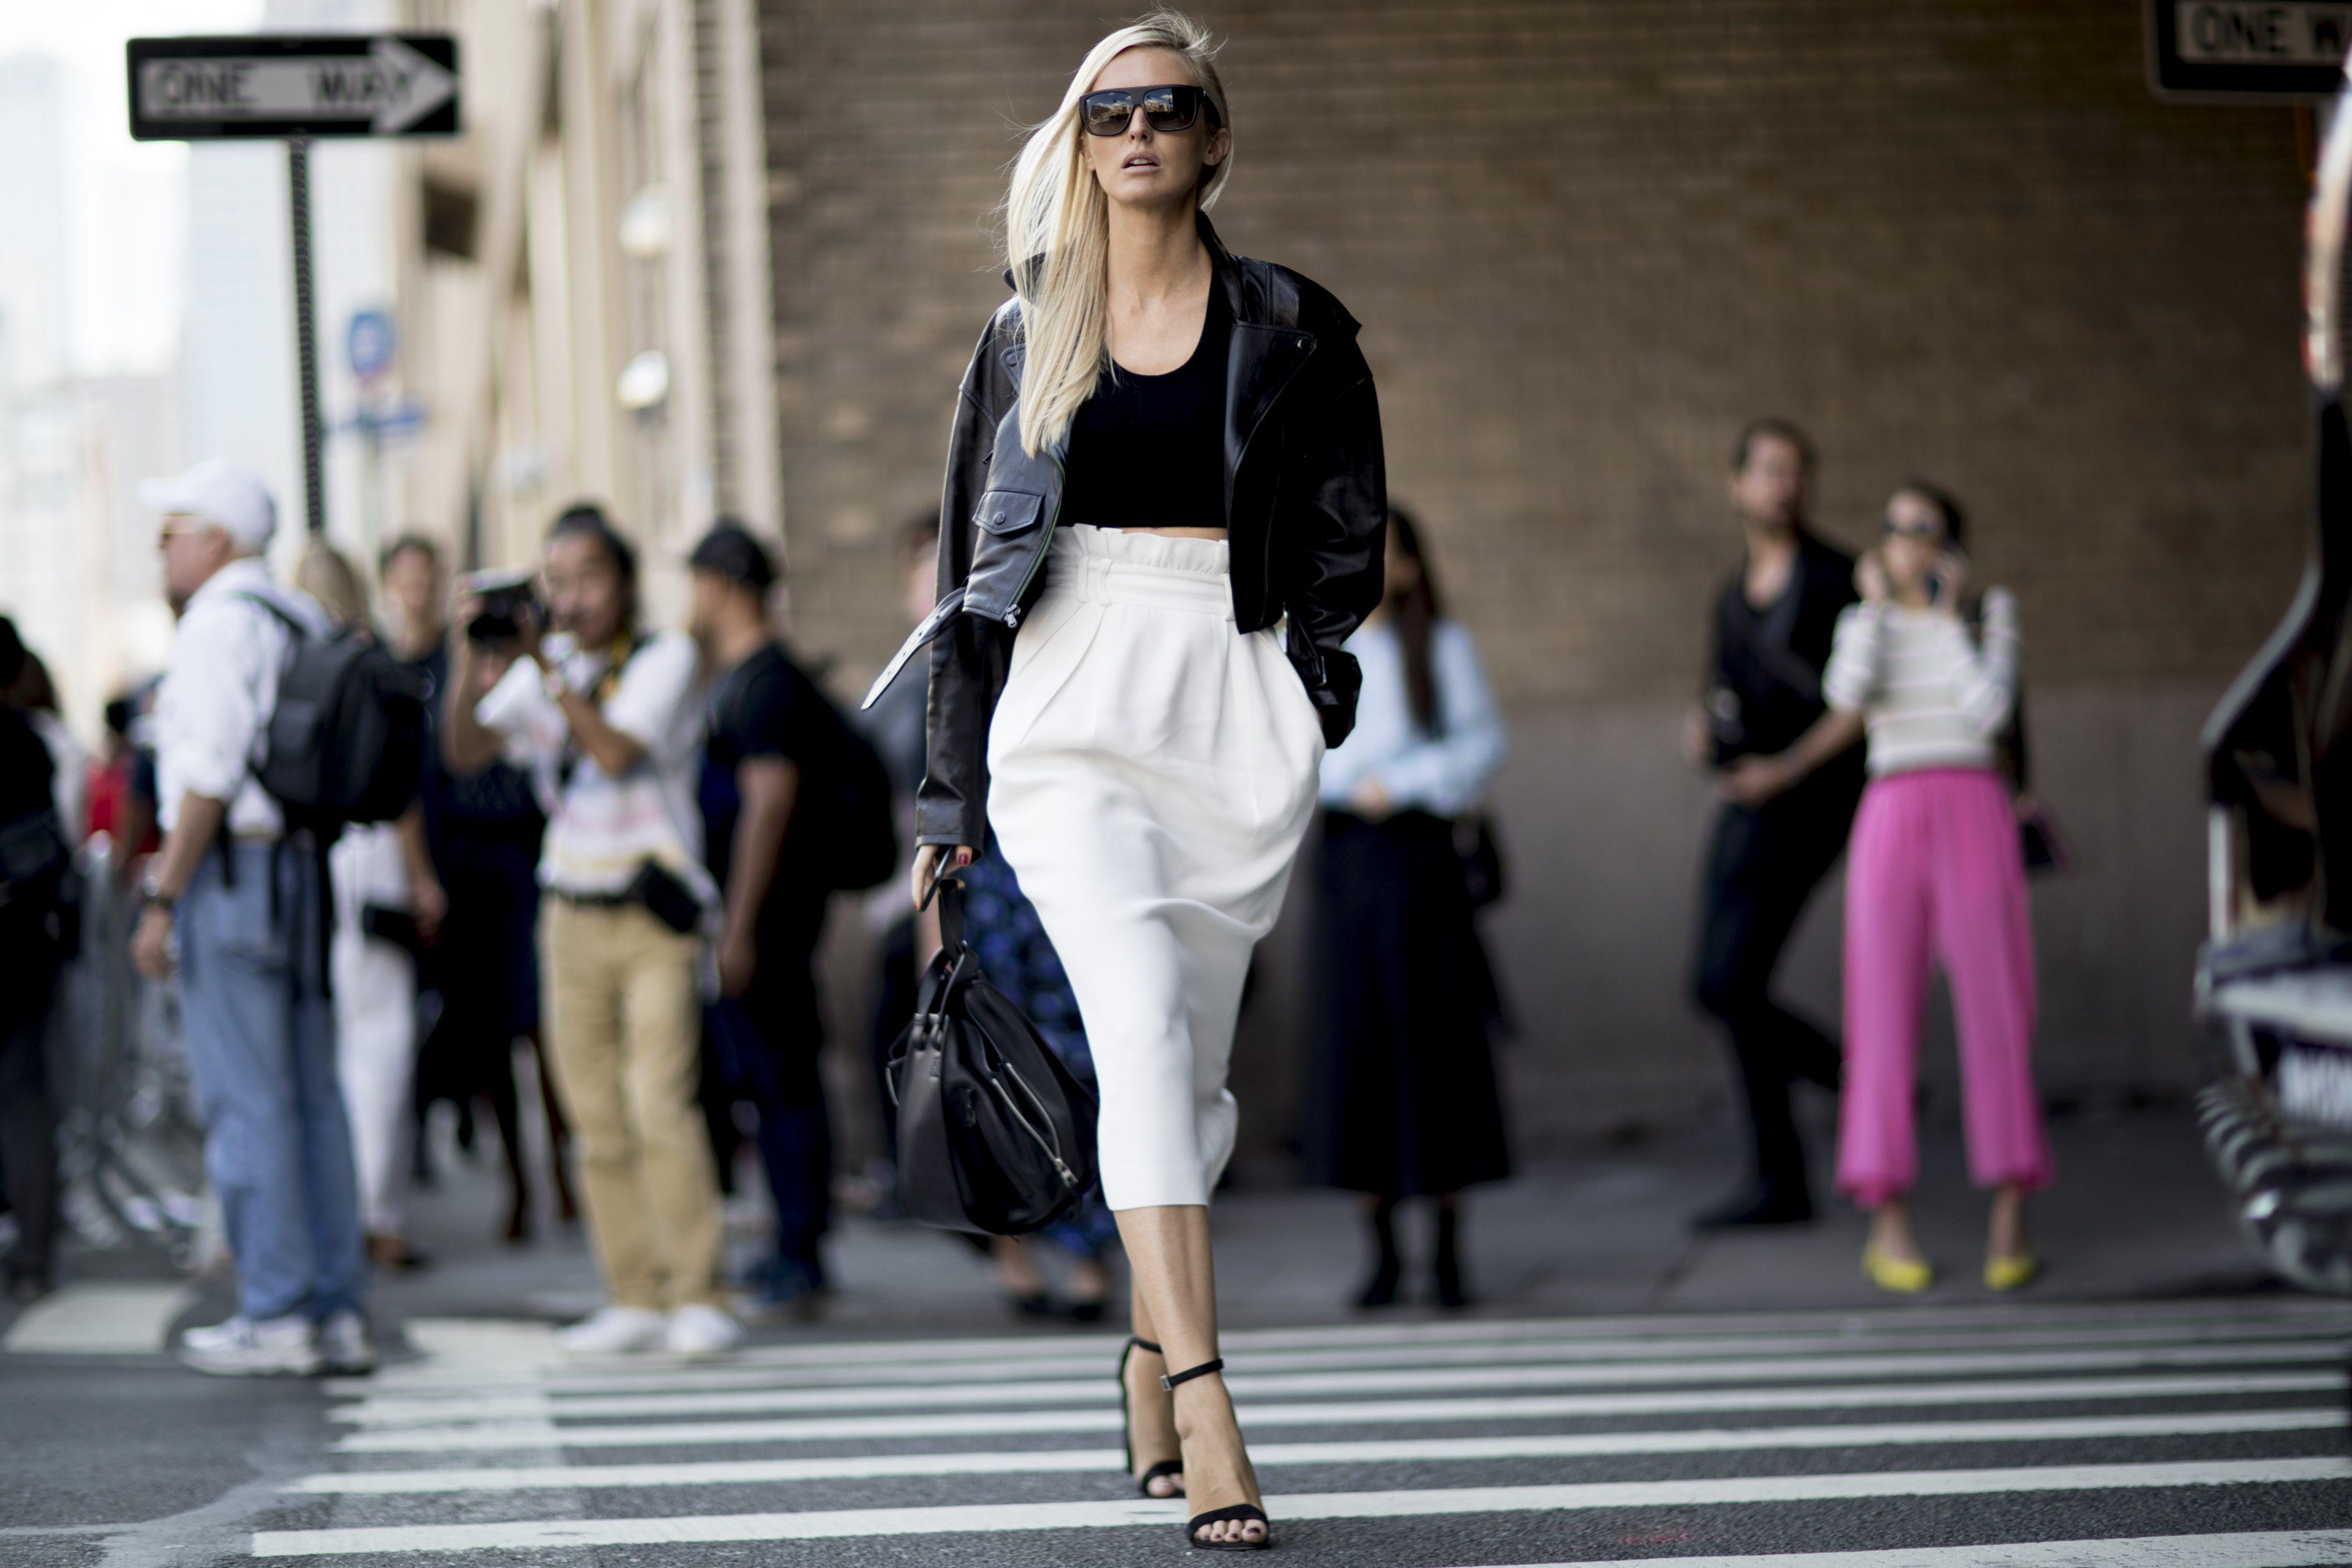 Vincenzo Grillo's Top 20 Street Style Looks from Spring 2018